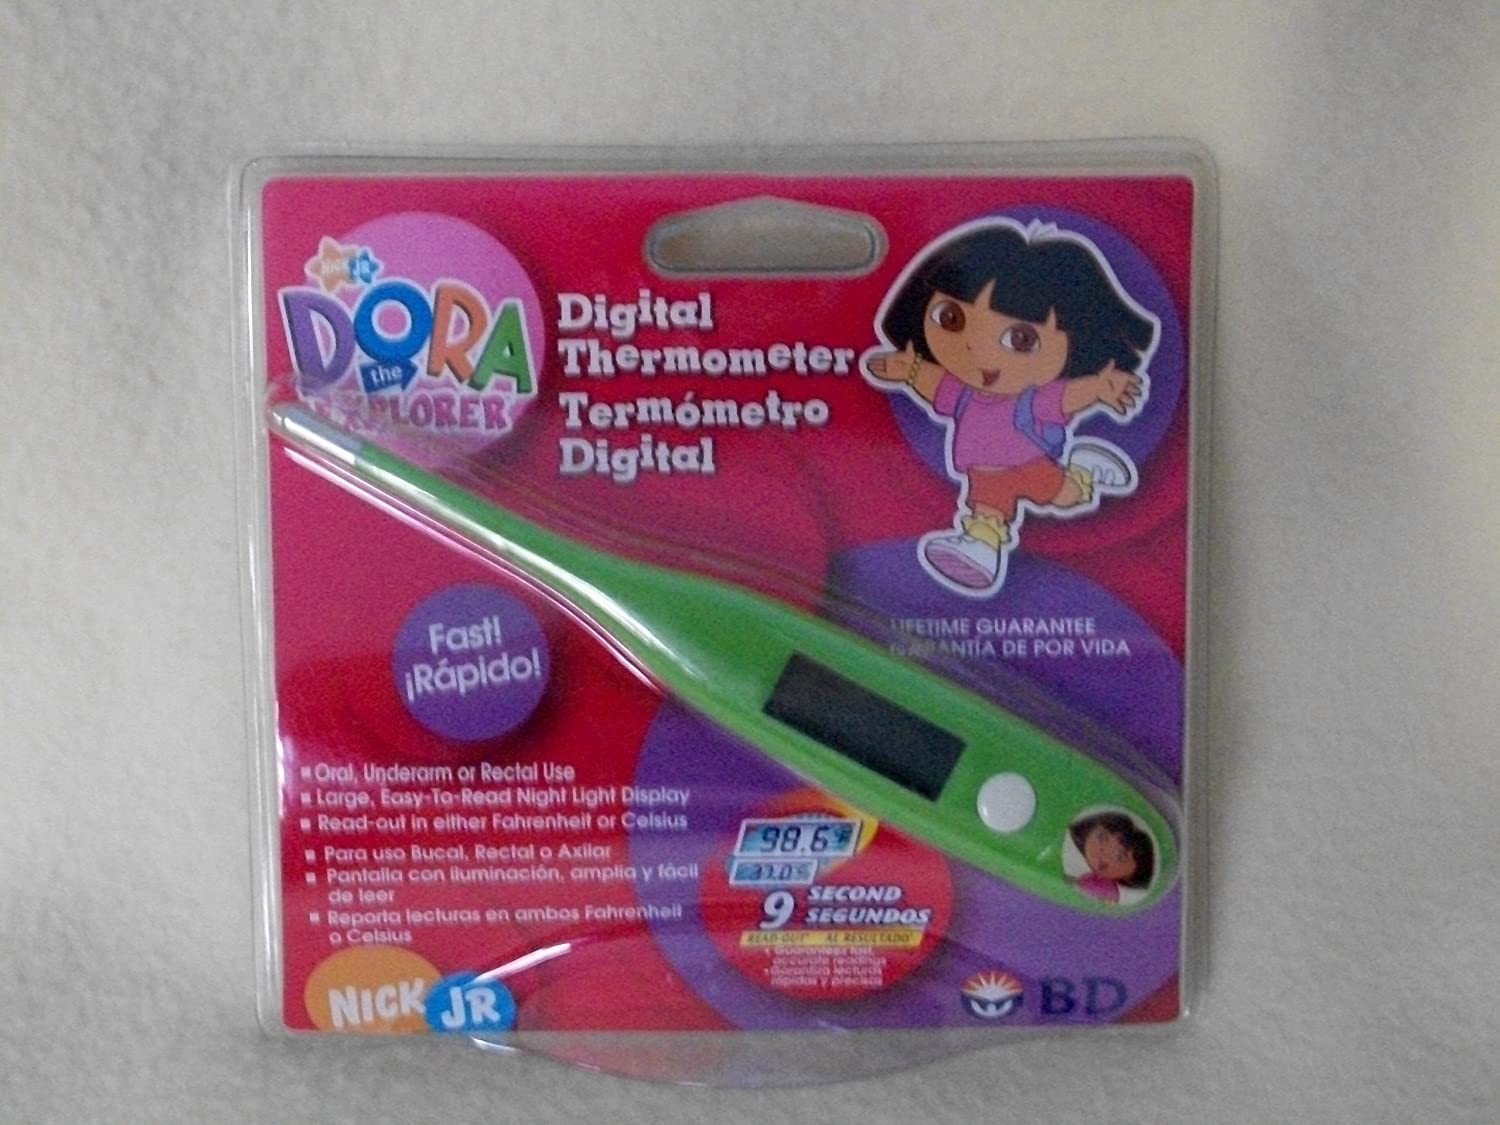 Amazon.com: Dora the Explorer Digital Thermometer: Health & Personal Care